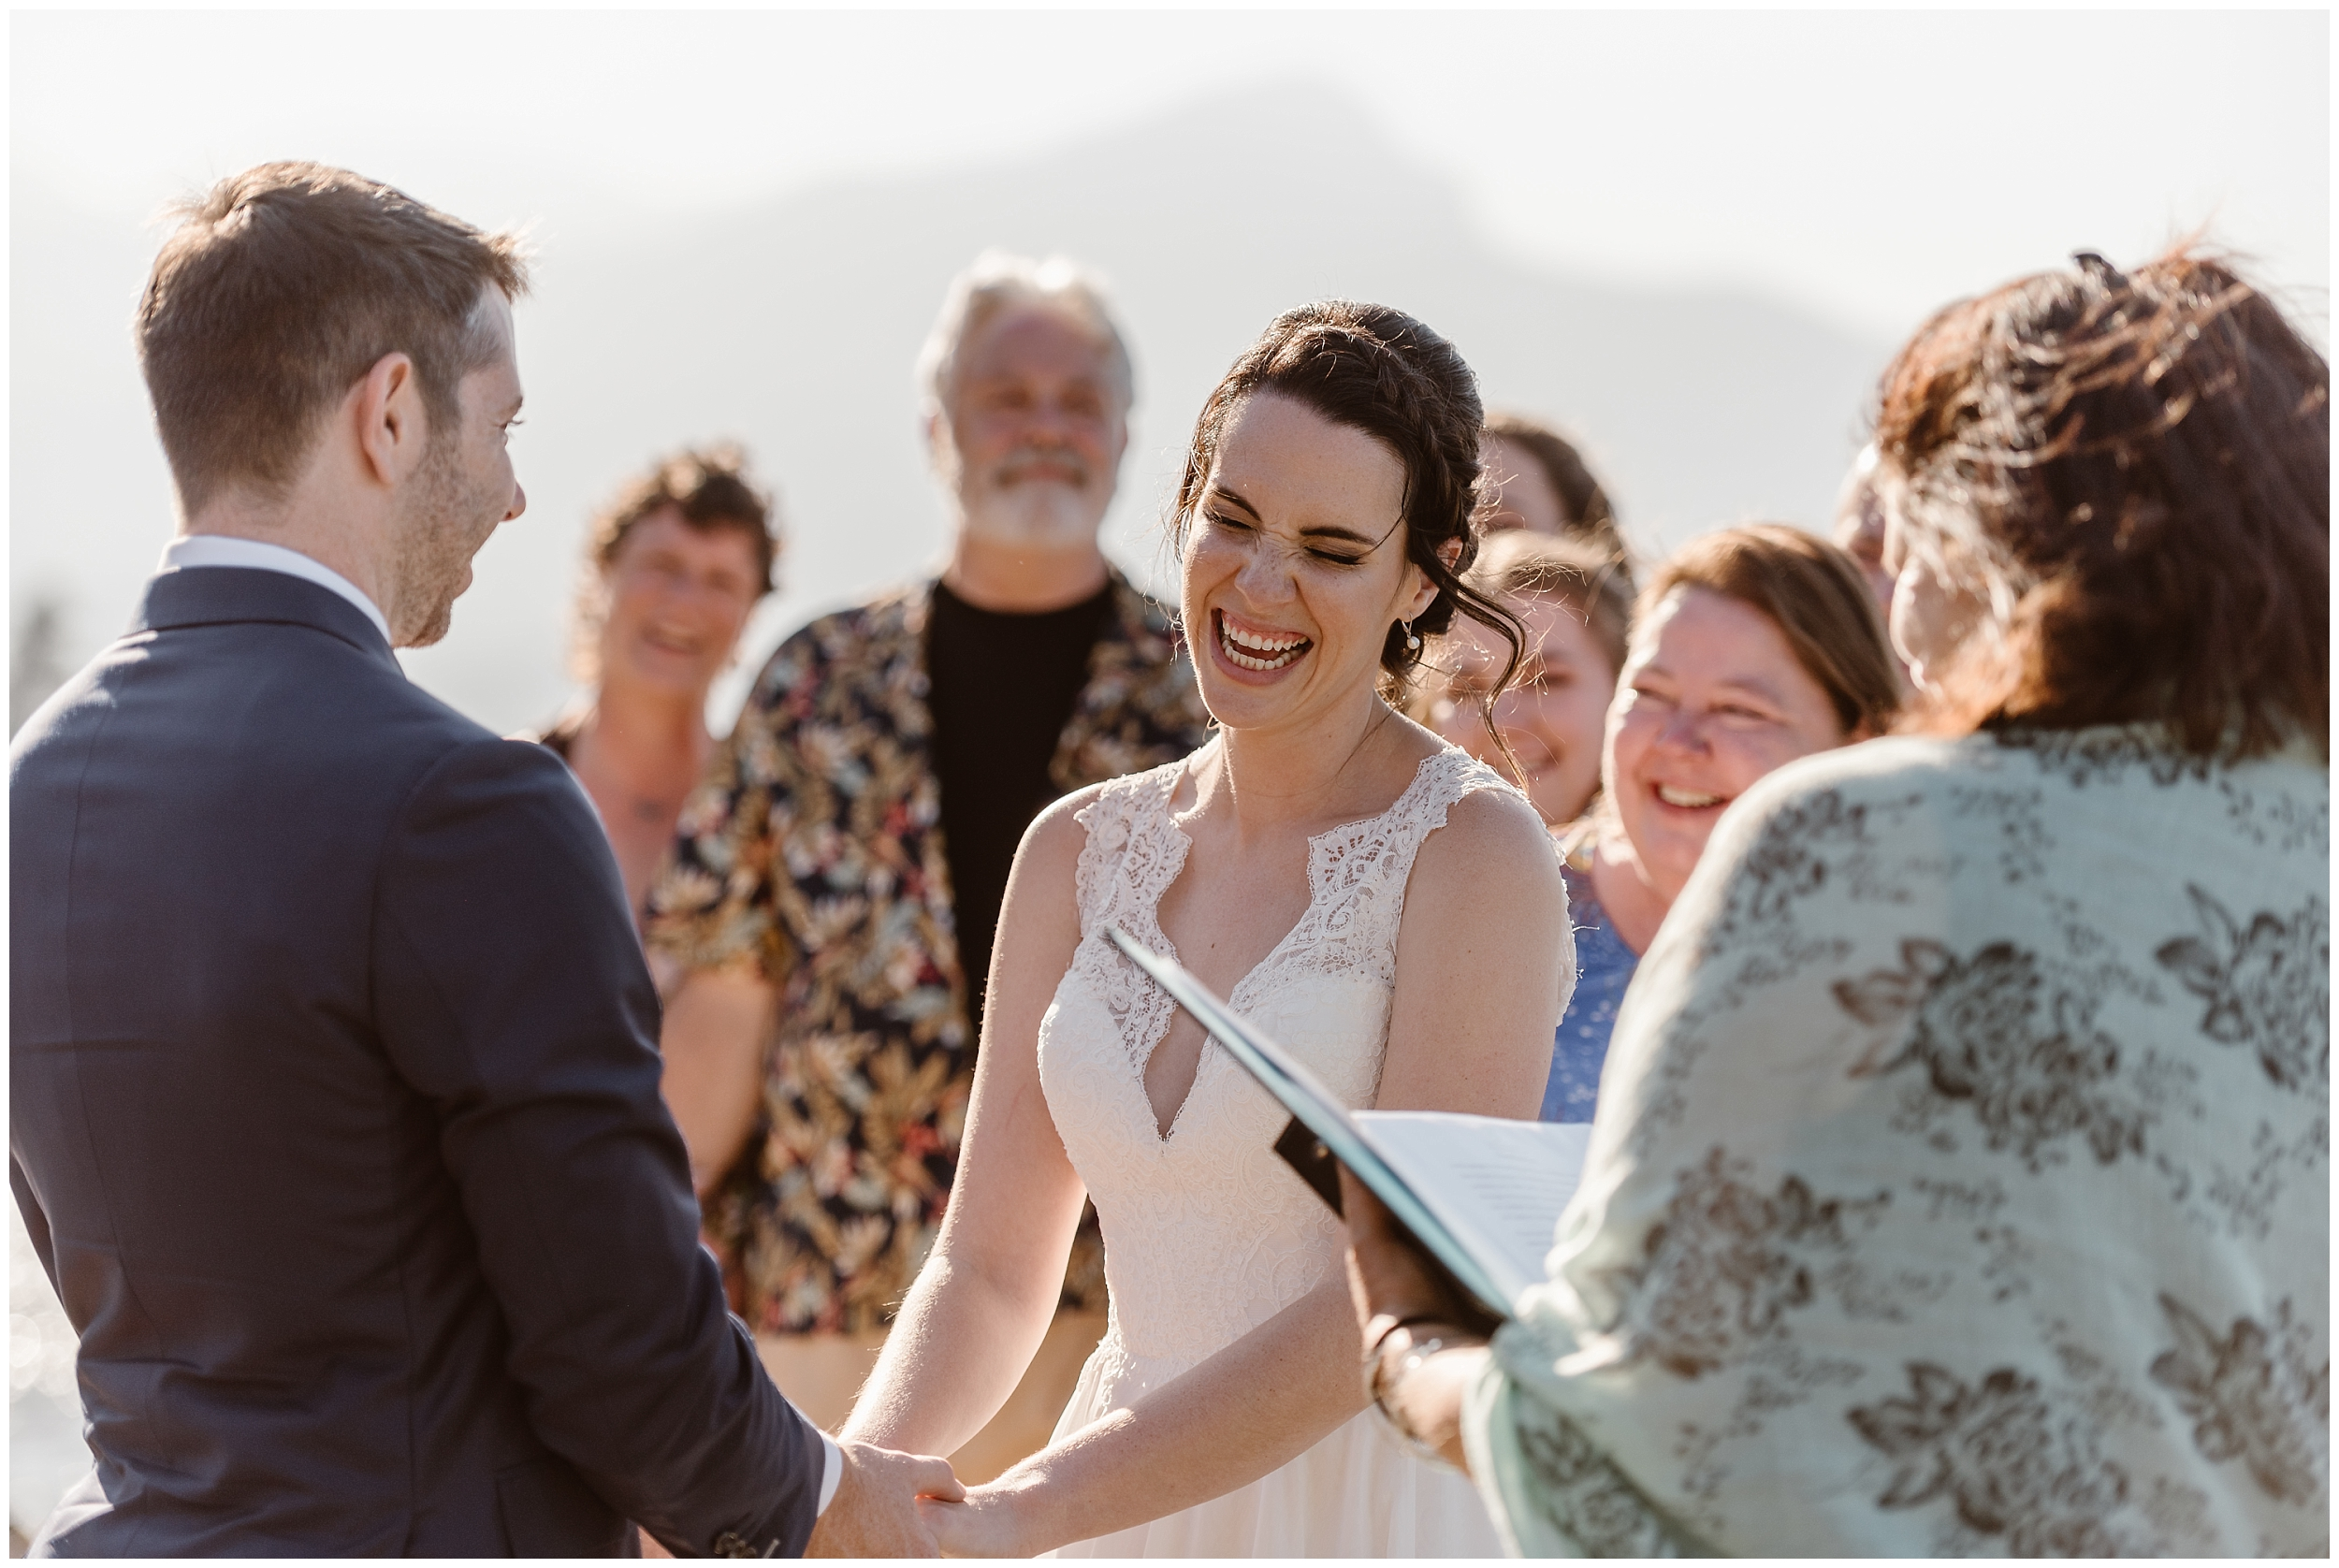 Lauryn and David hold hands during their Columbia River Gorge wedding. Lauryn, closing her eyes as the officiant marries them, laughs out loud at David. Behind, them, their family looks on during their Oregon elopement.